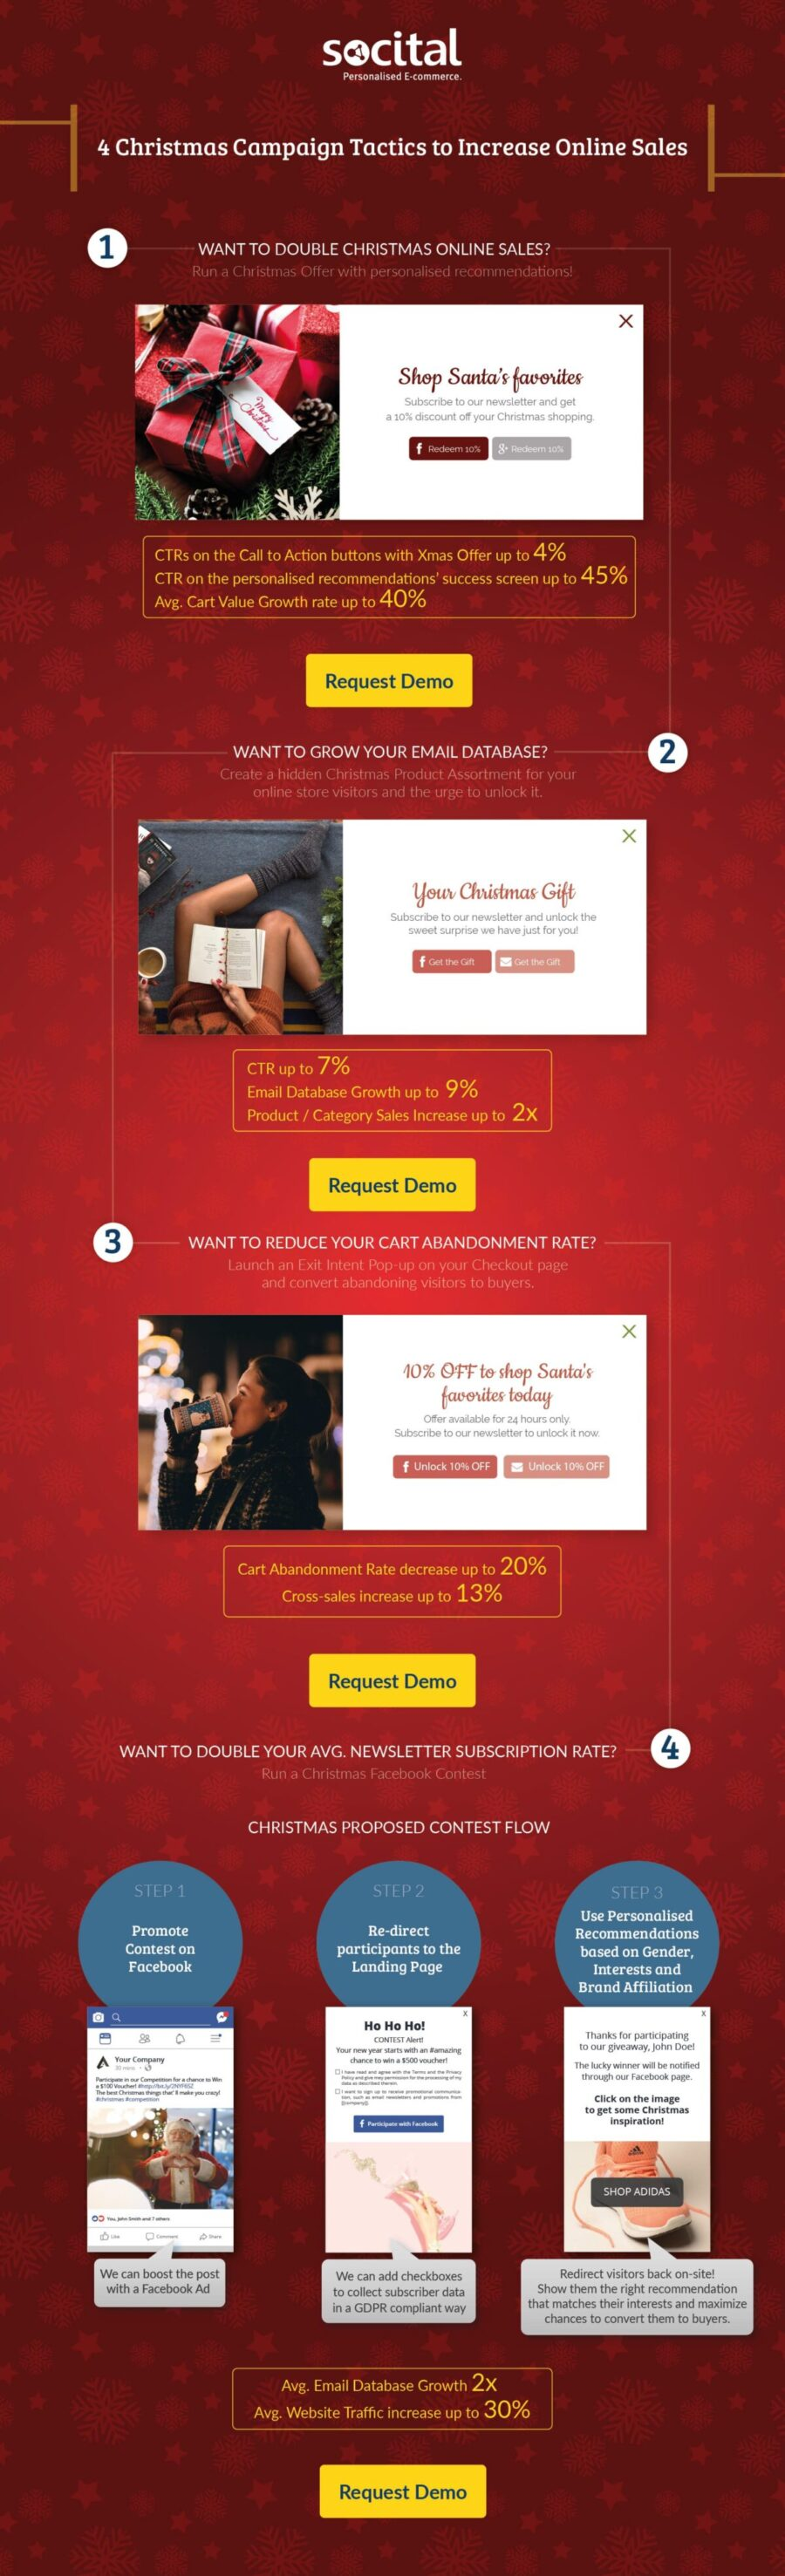 the festive season e-commerce tactics to increase online sales infographic